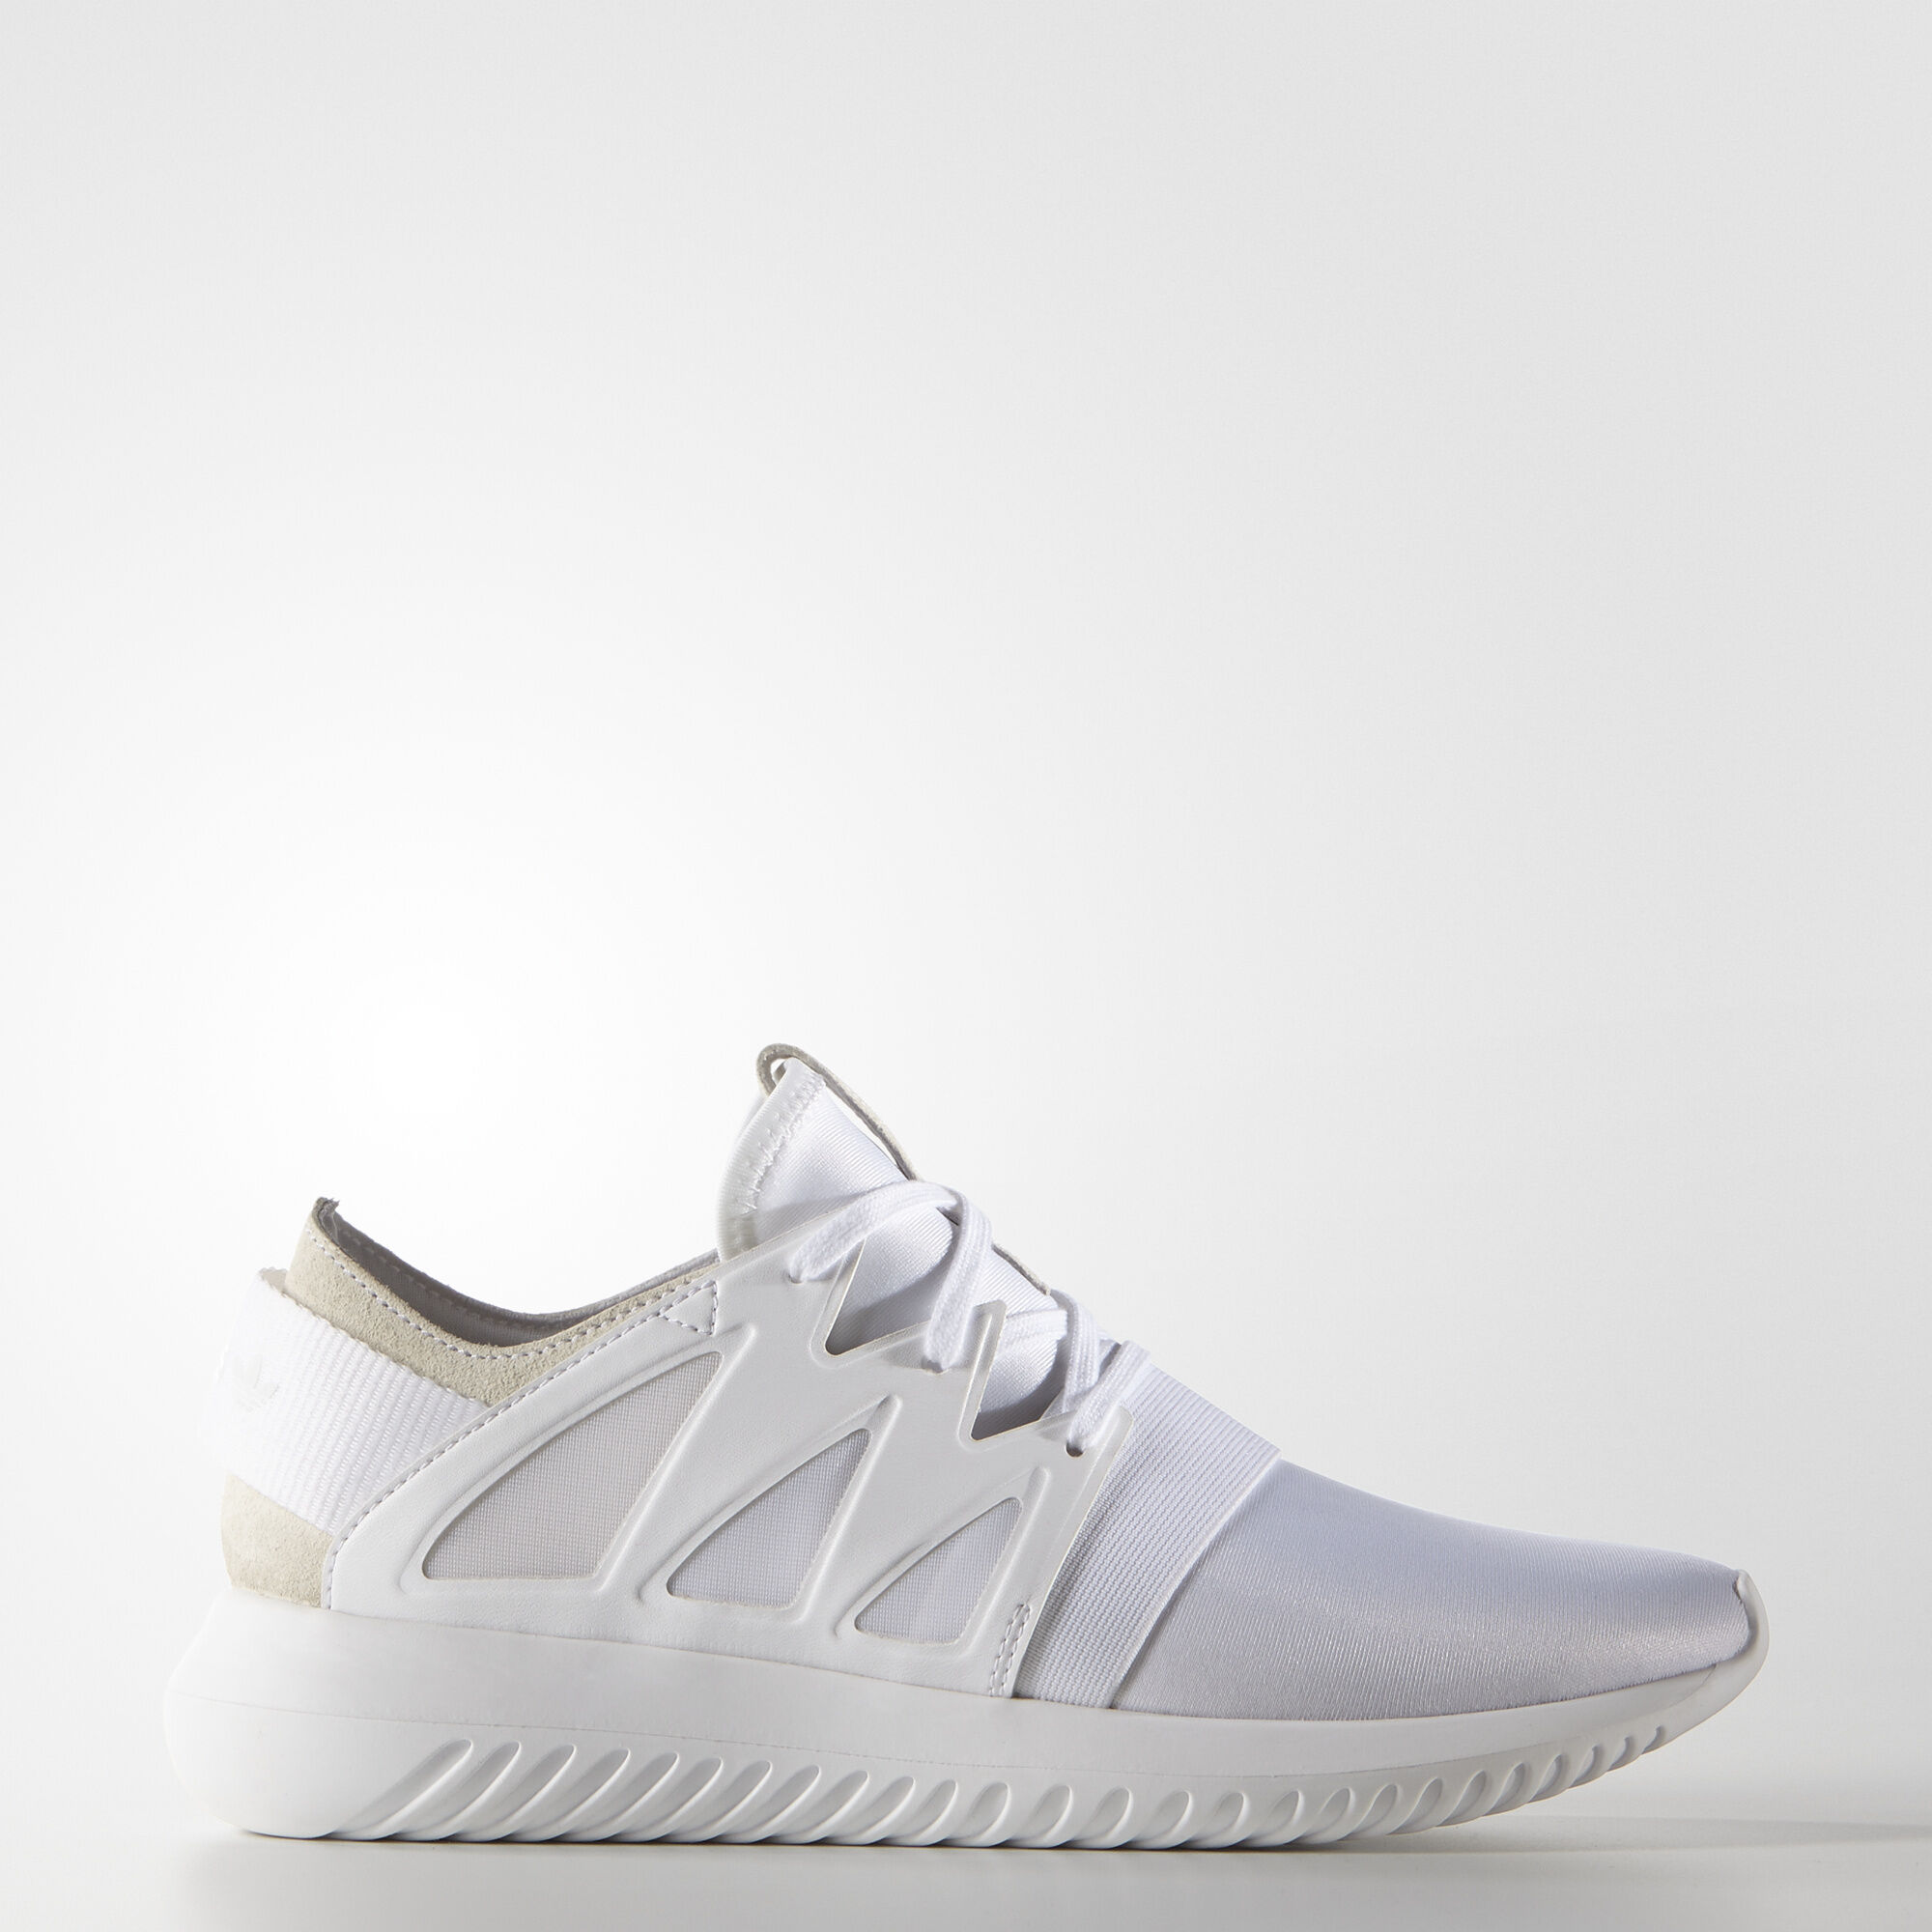 Adidas Tubular Viral Uk